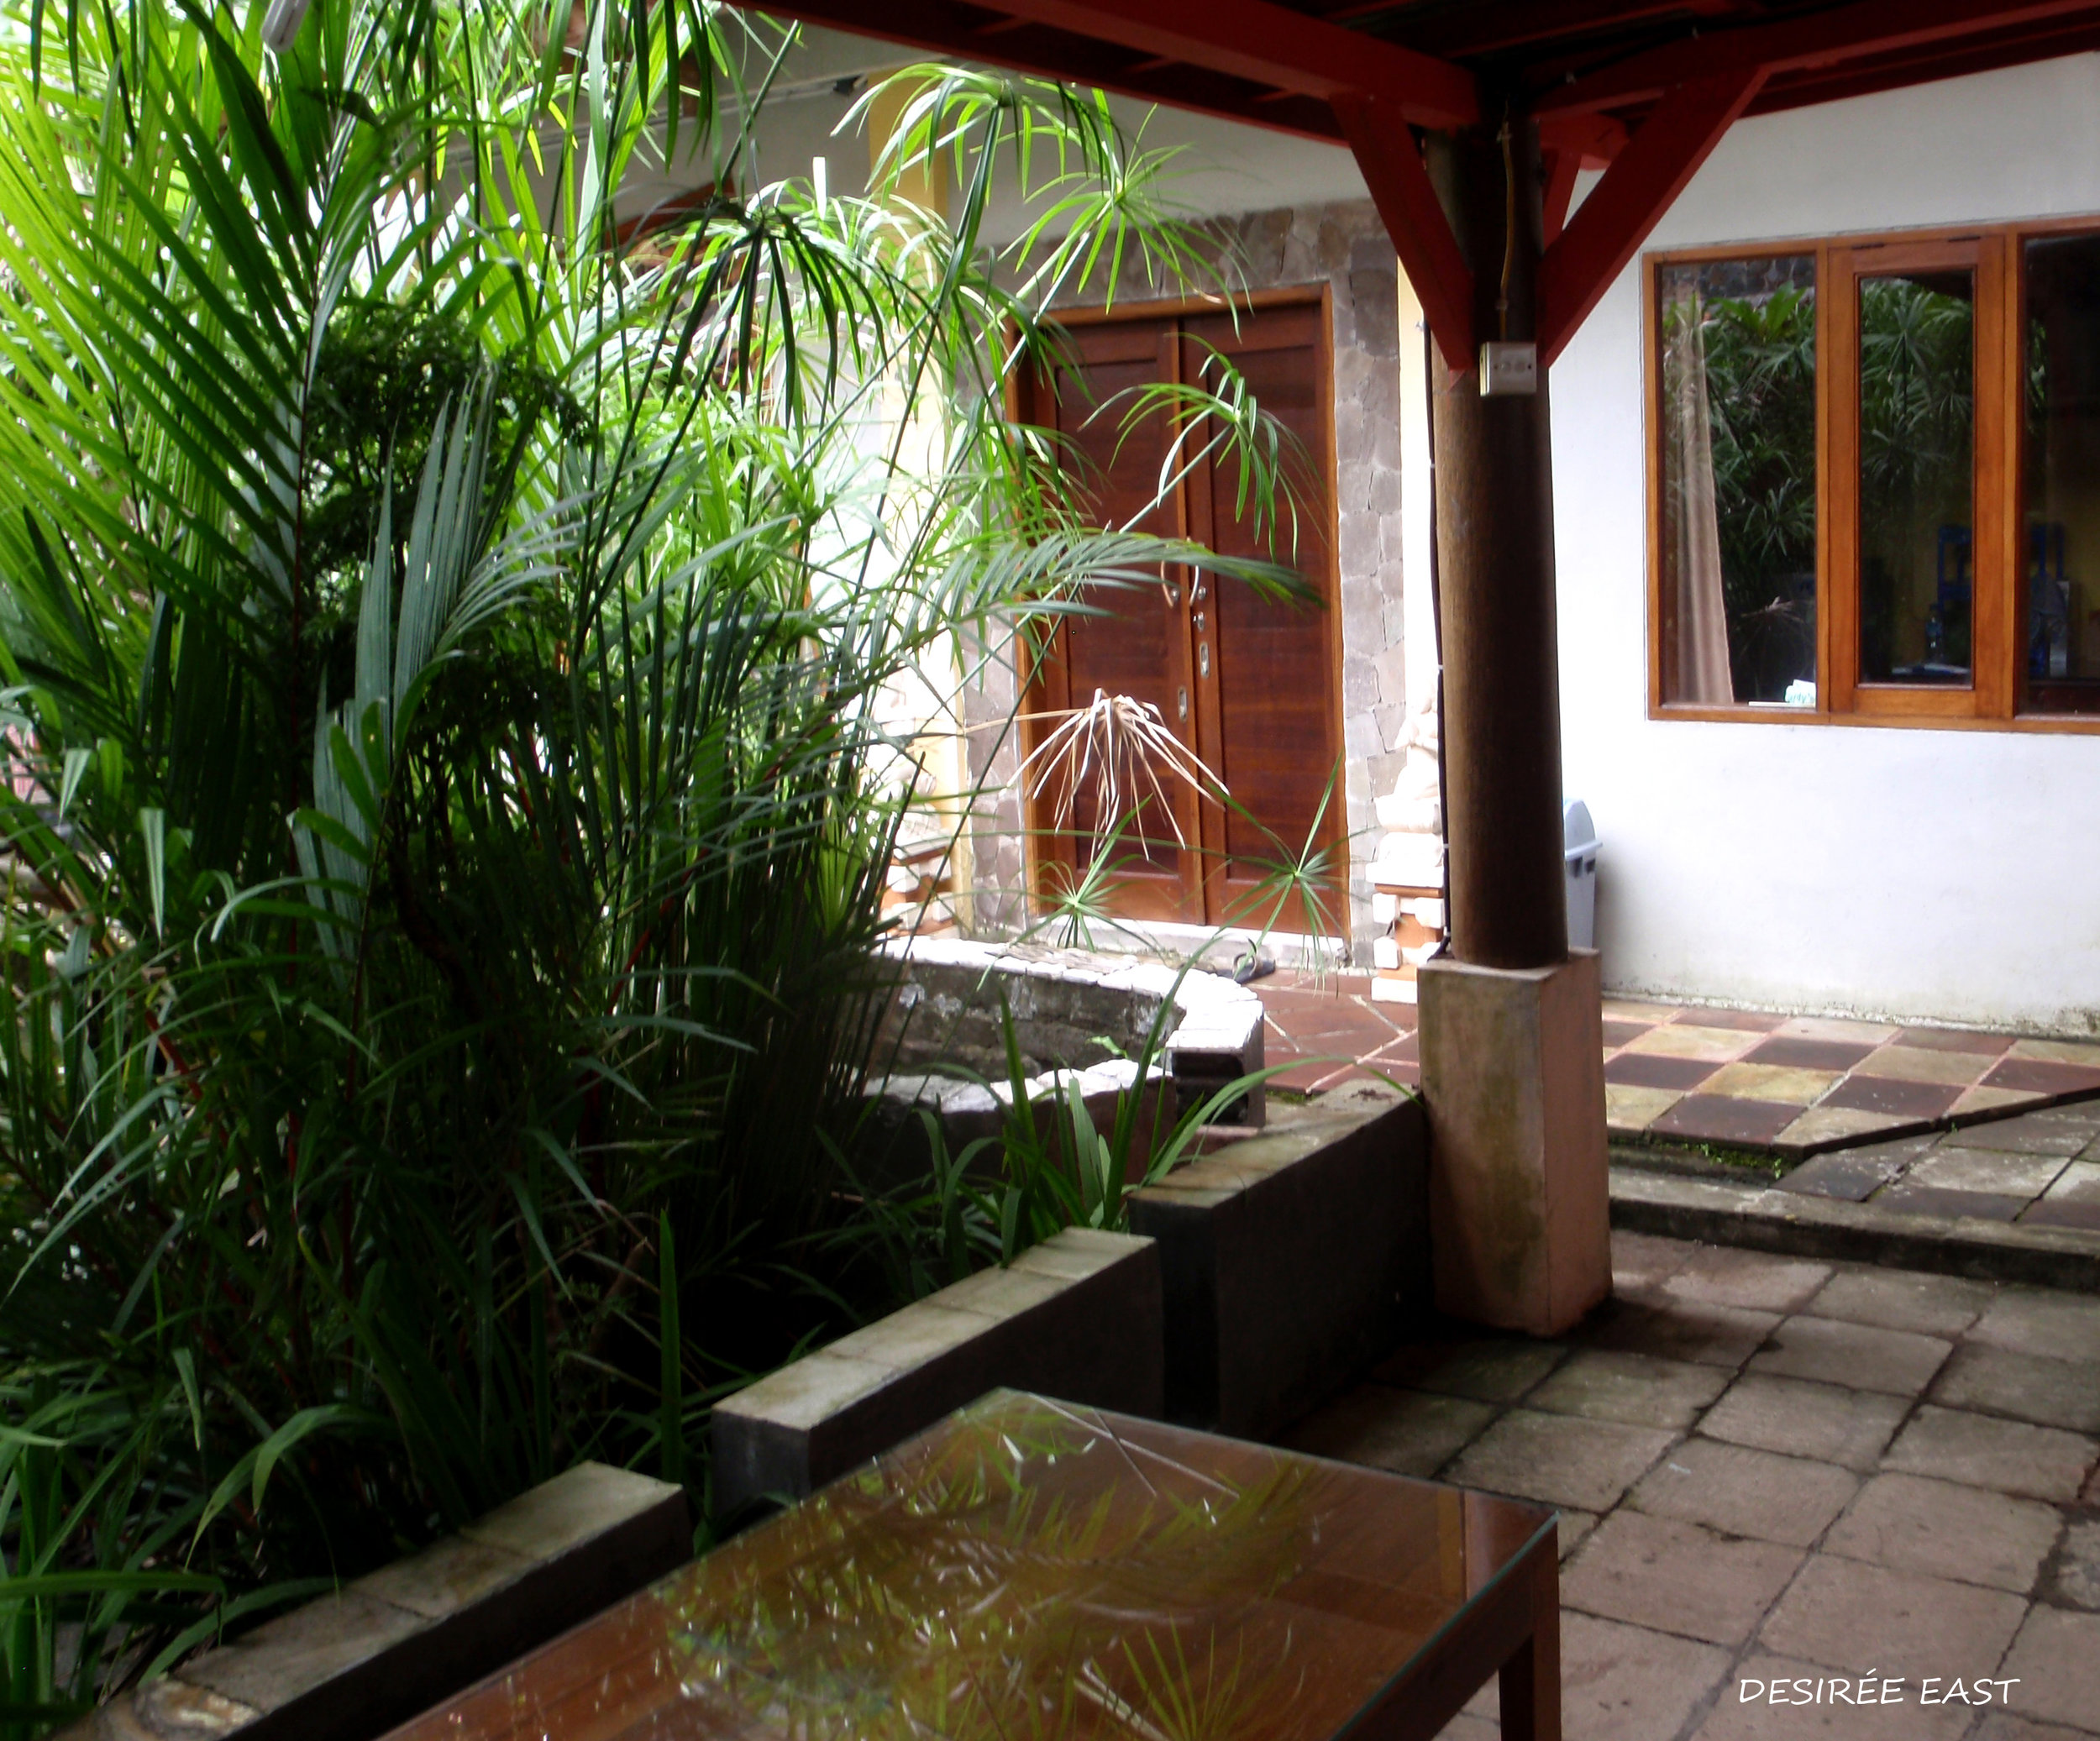 our front door. andree homestay. bali, indonesia. photo by desiree east